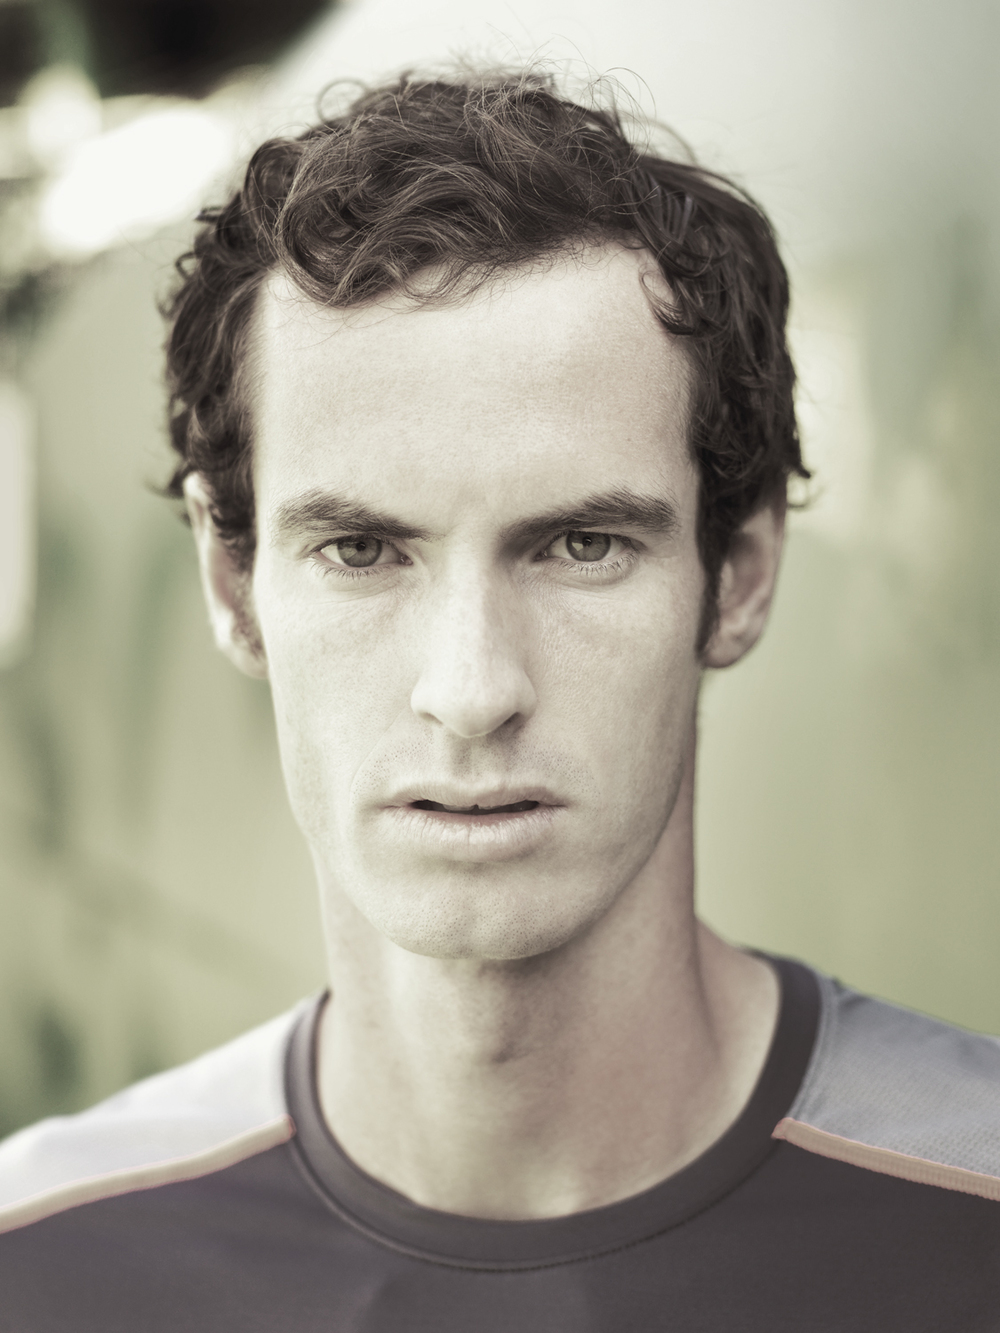 ANDY_MURRAY_PORTRAIT.jpg